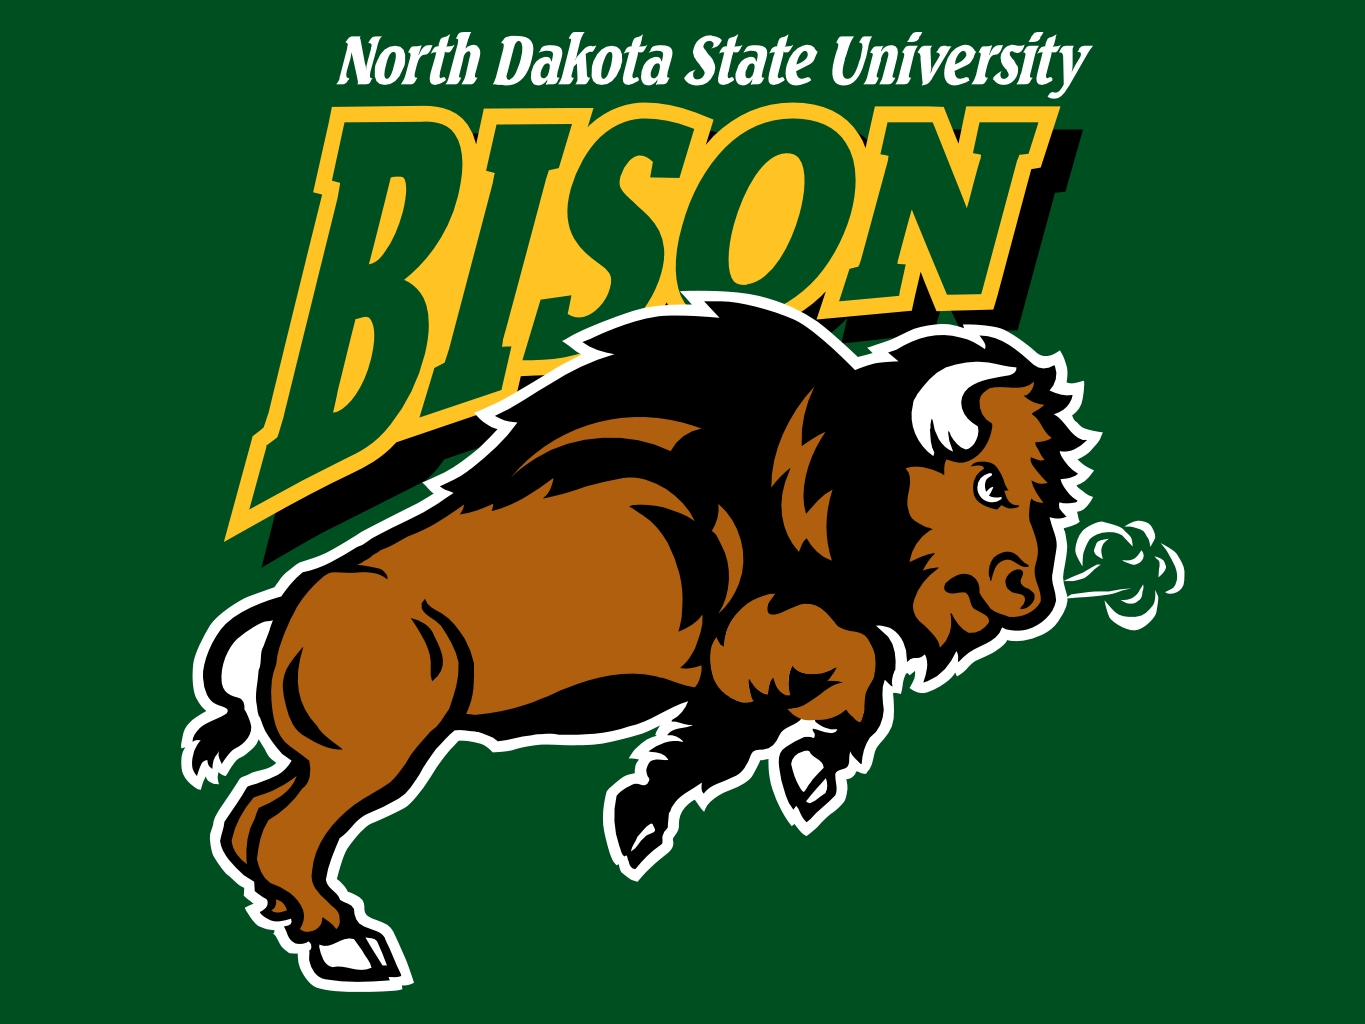 Image gallery for ndsu bison wallpaper 1365x1024